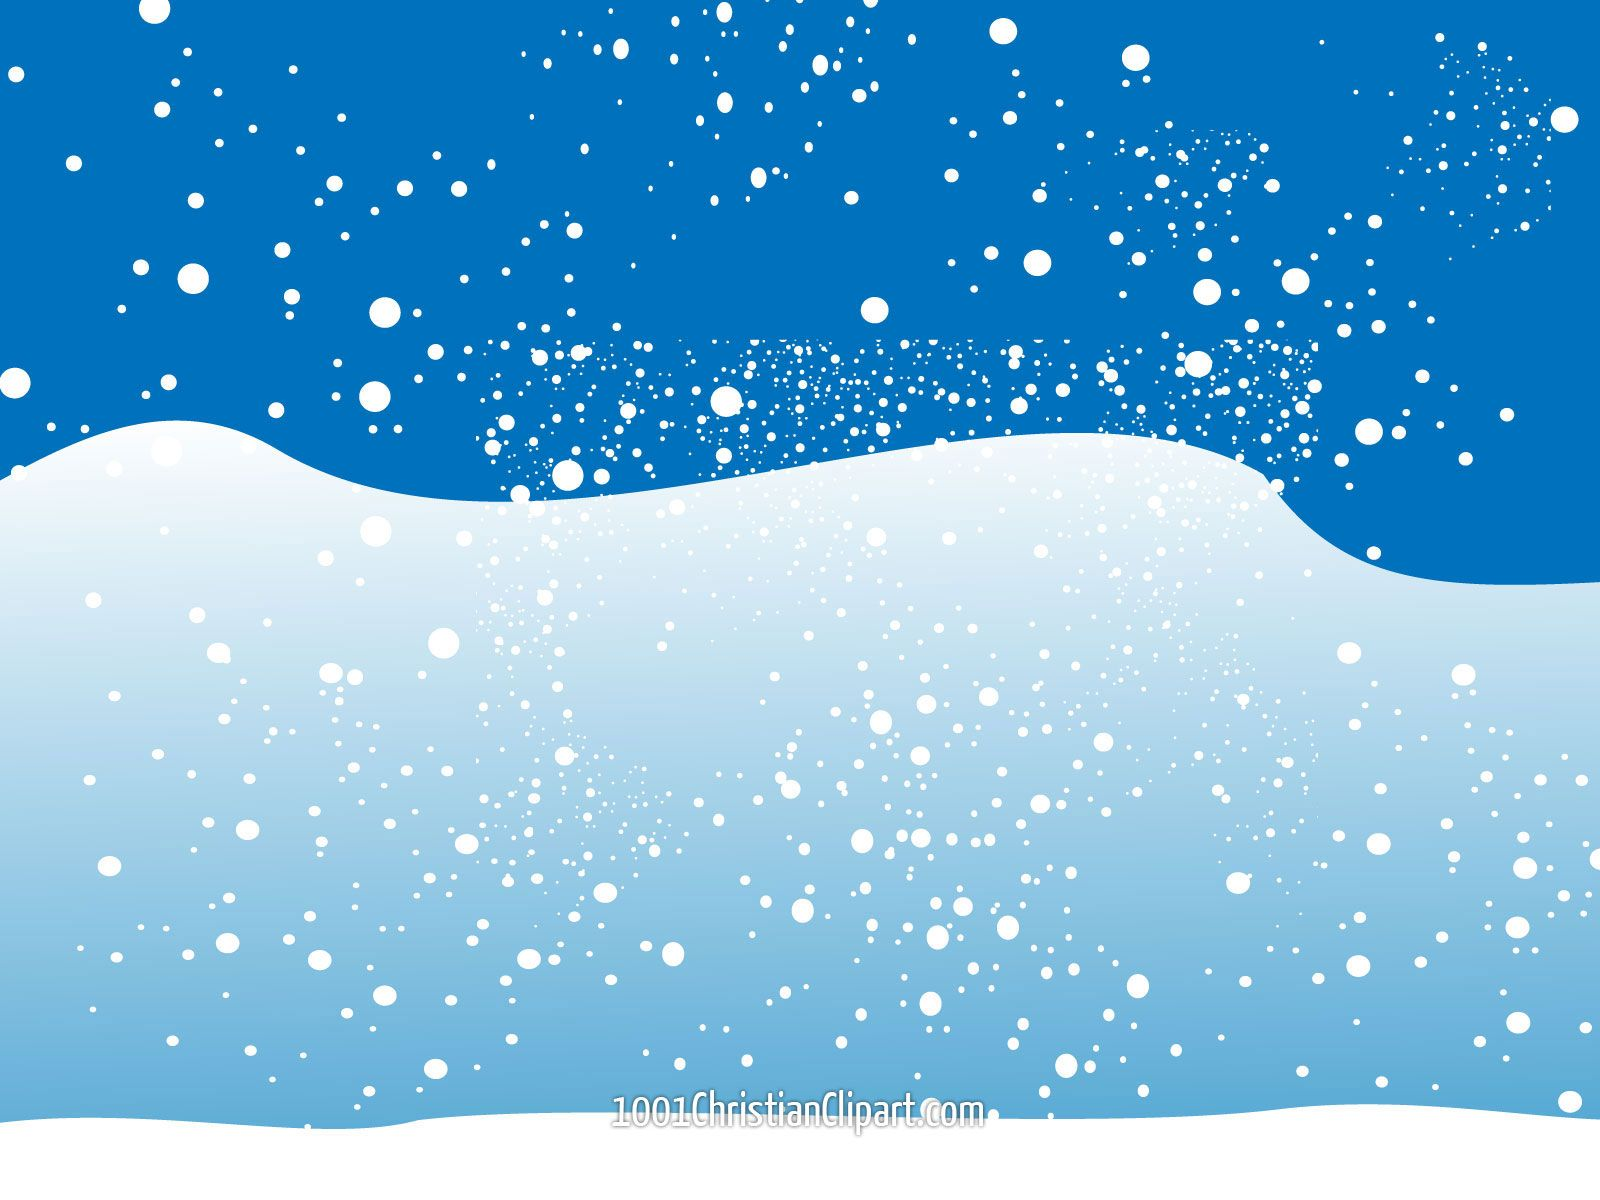 Snowflakes clipart scene. Stunning design ideas snow